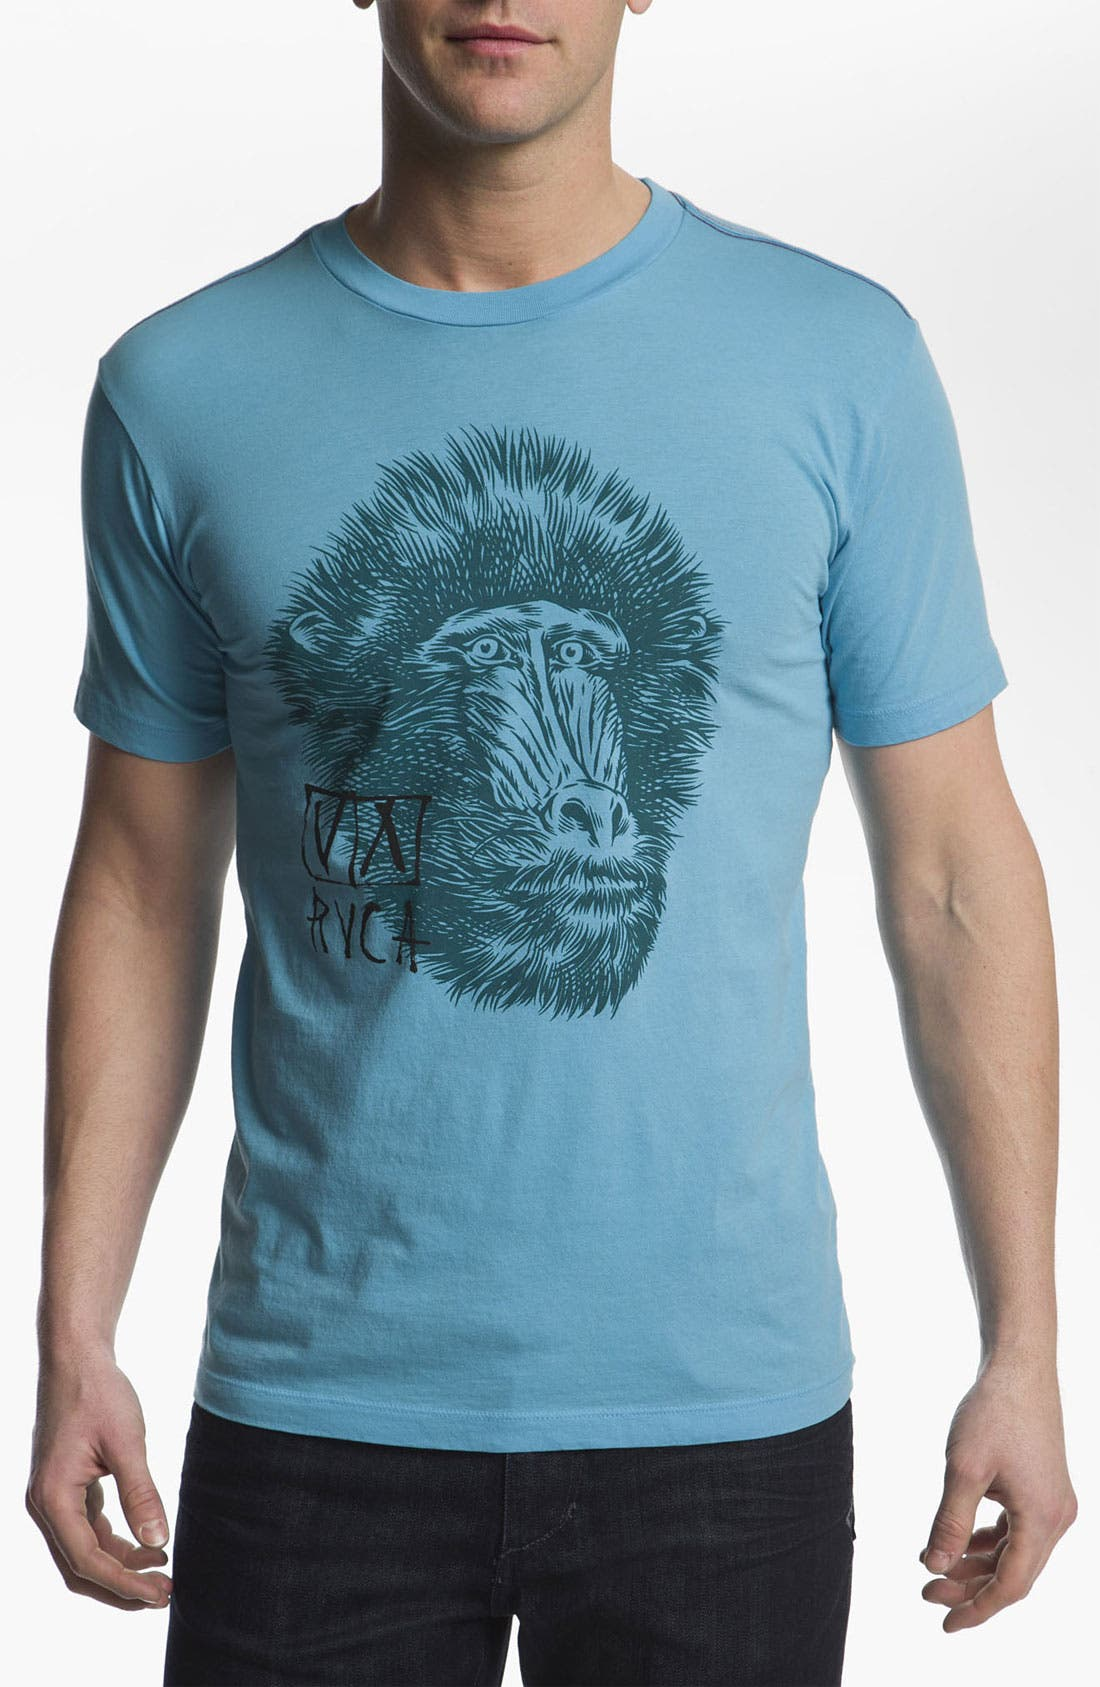 Alternate Image 1 Selected - RVCA 'Mandrill' T-Shirt